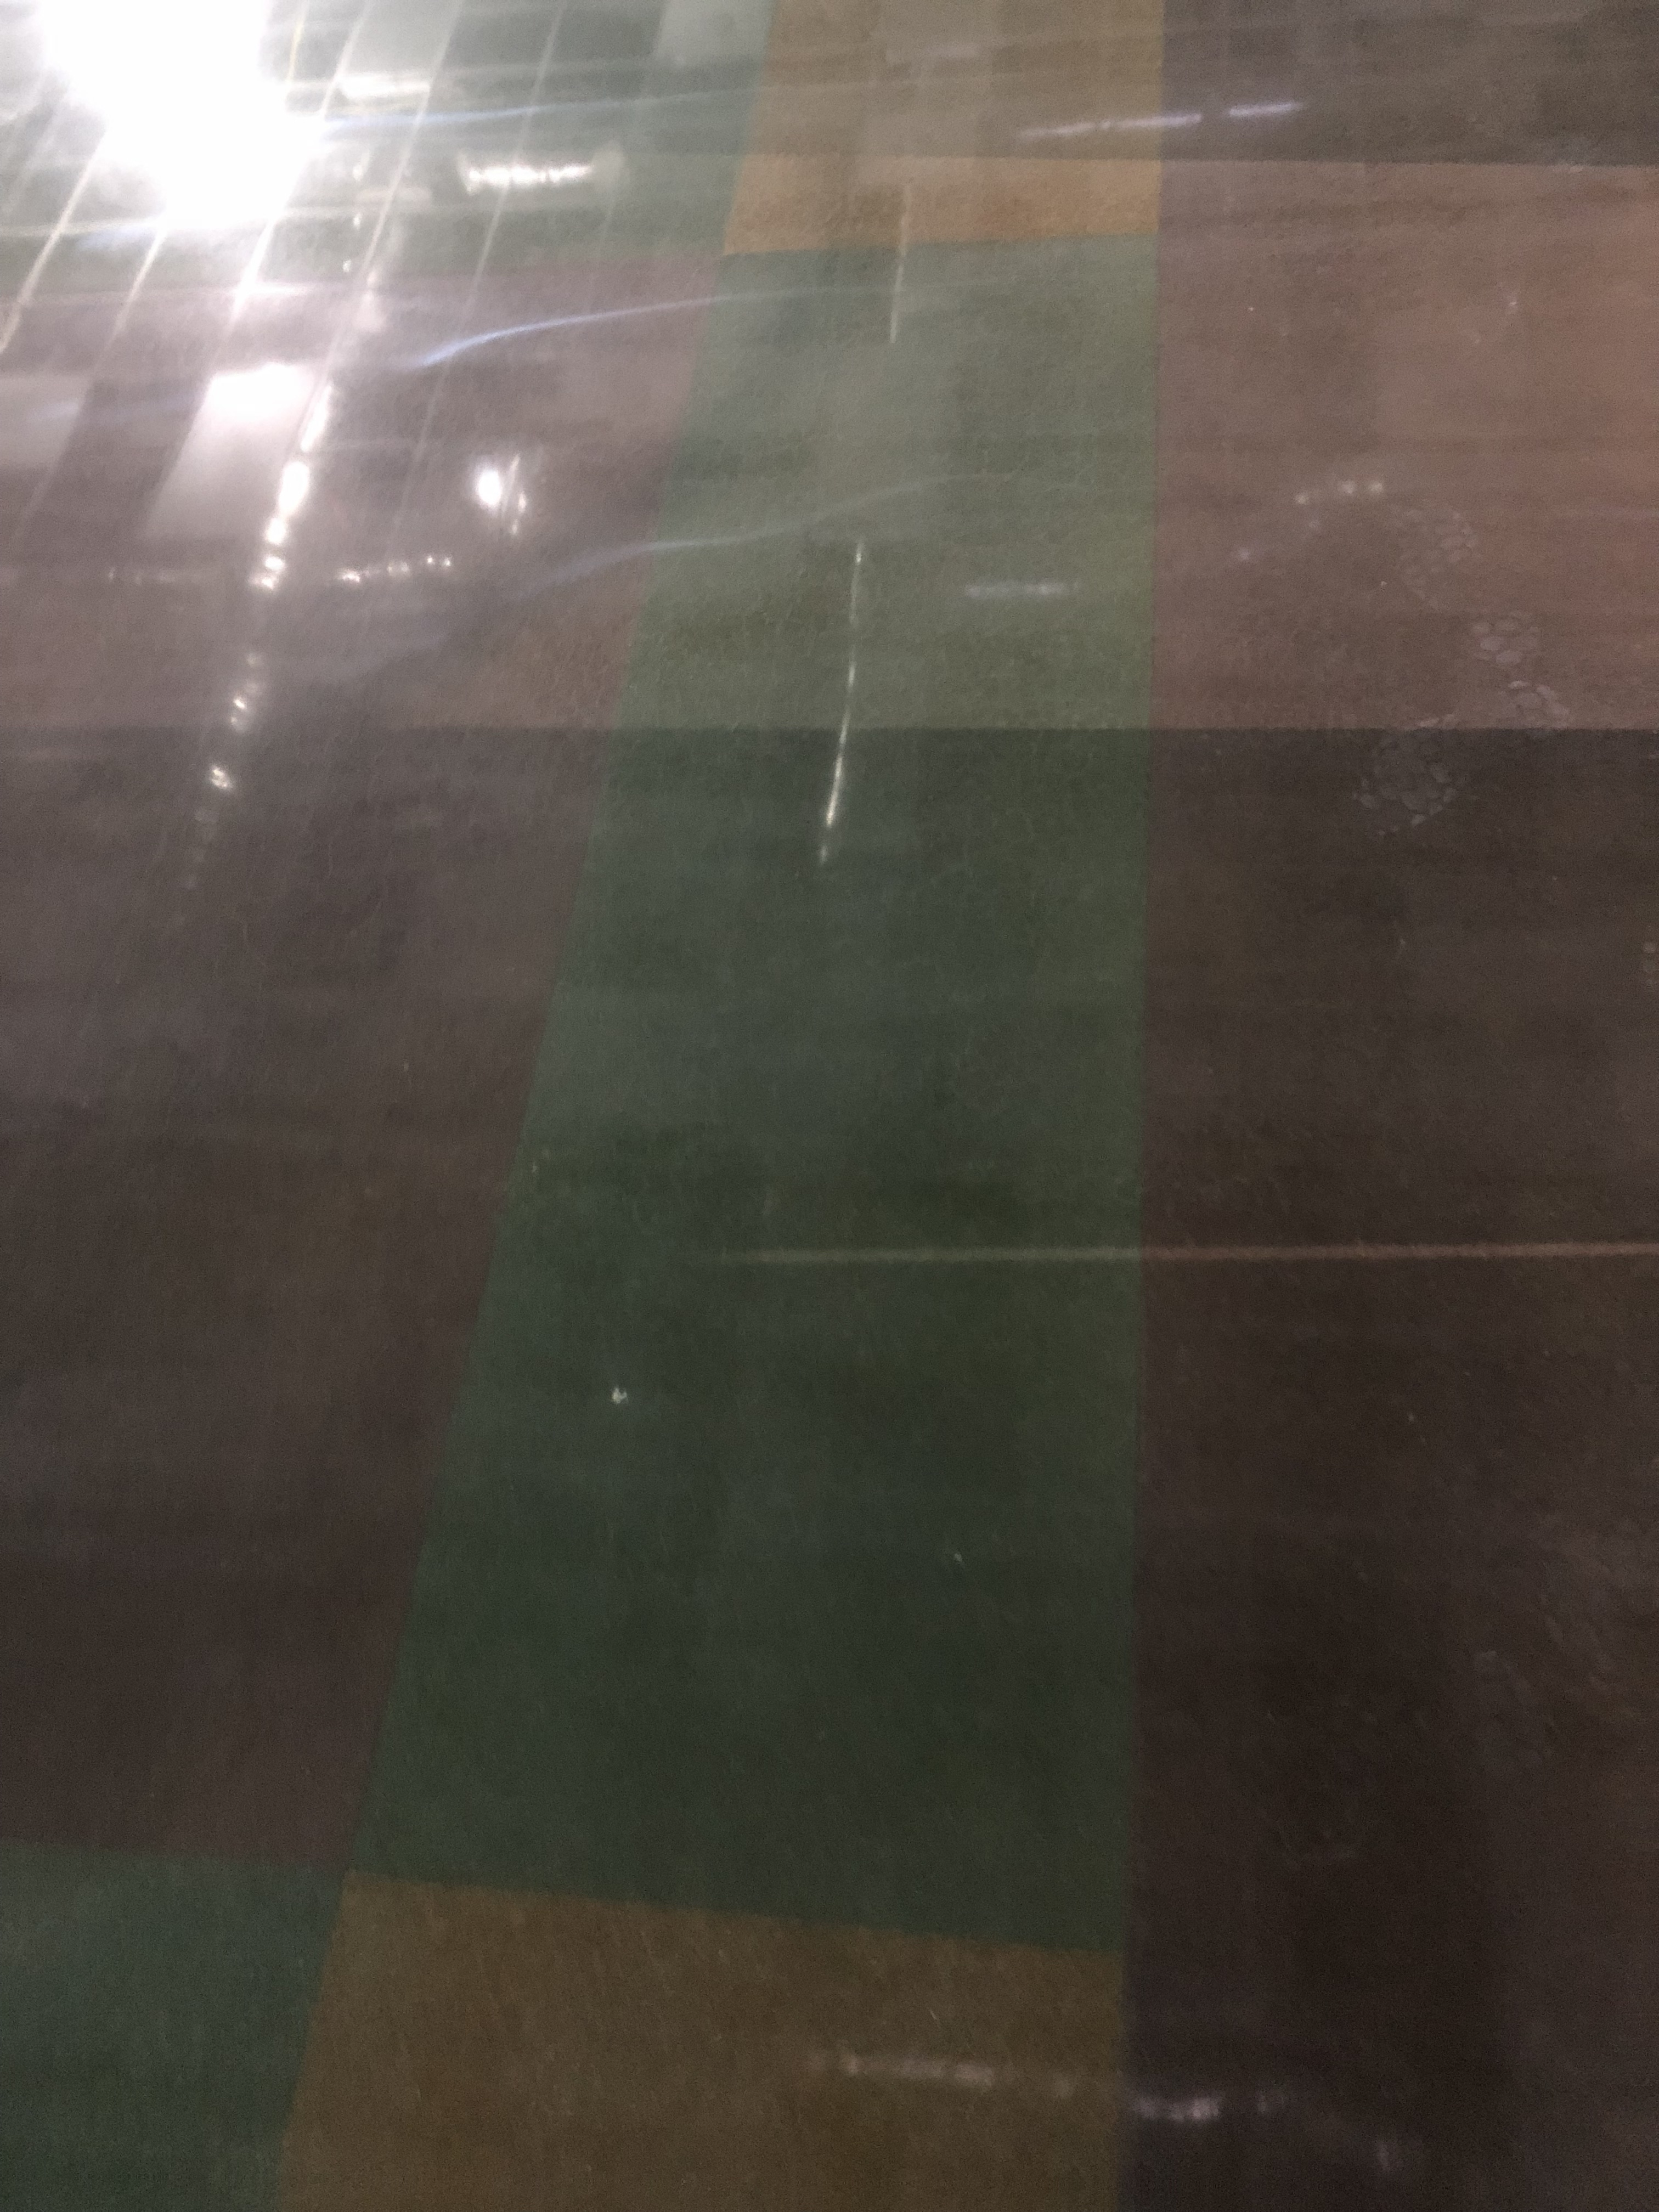 A polished concrete floor demonstrating a red, green, and yellow square pattern.